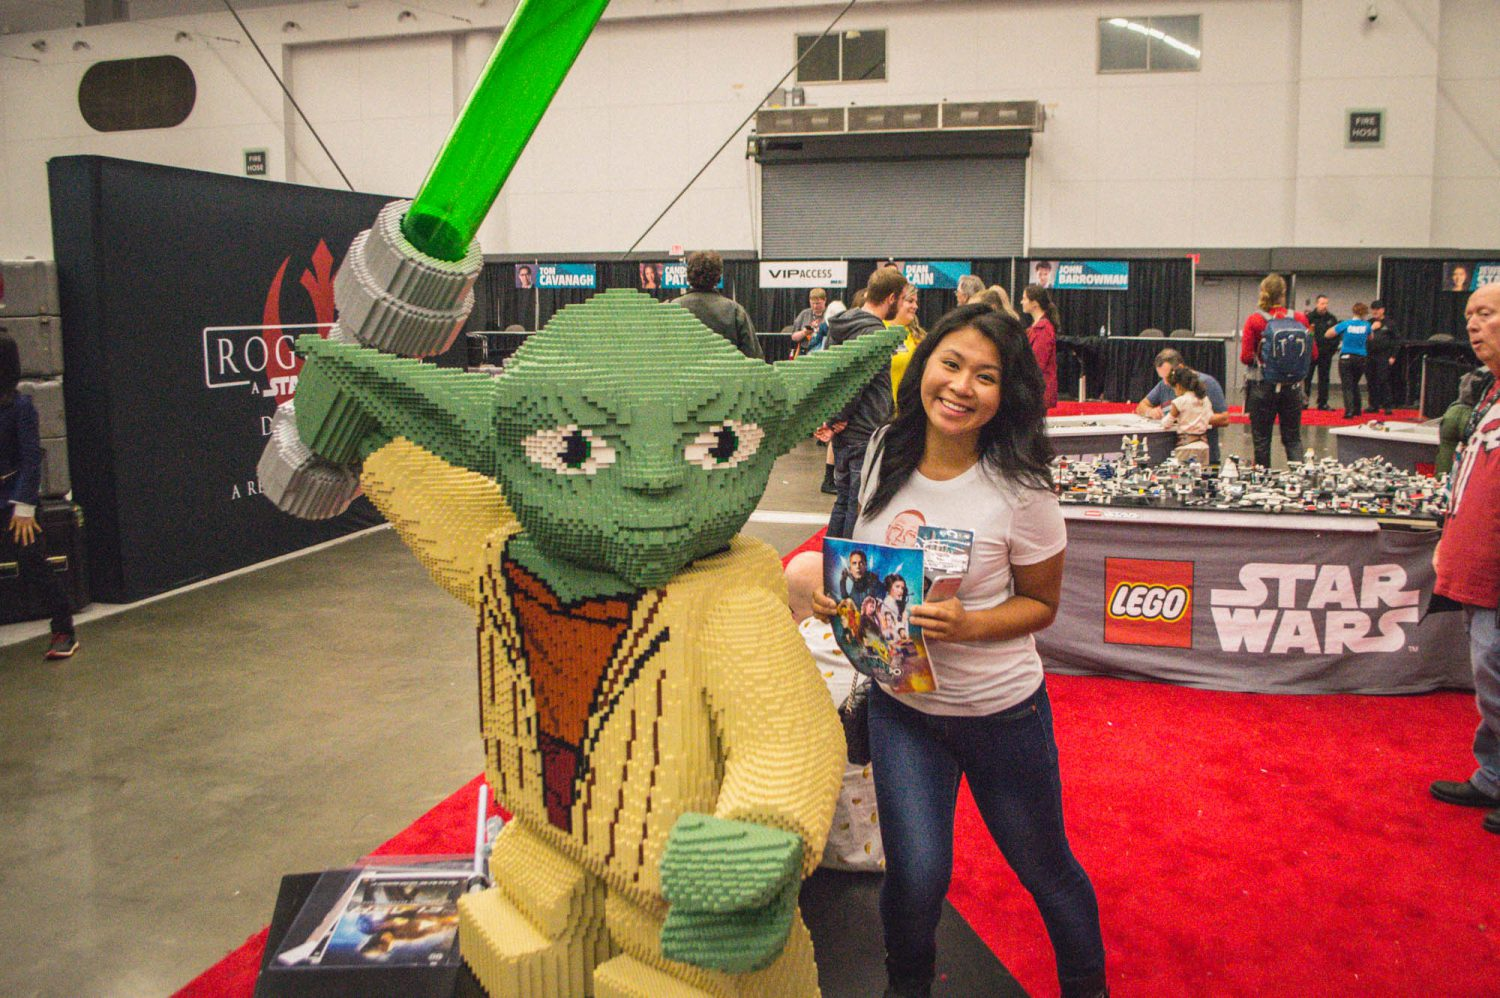 The ultimate pop culture convention guide for first timers. Are you visiting a convention guide for the first time? Here are tips and tricks that you should know before you go!